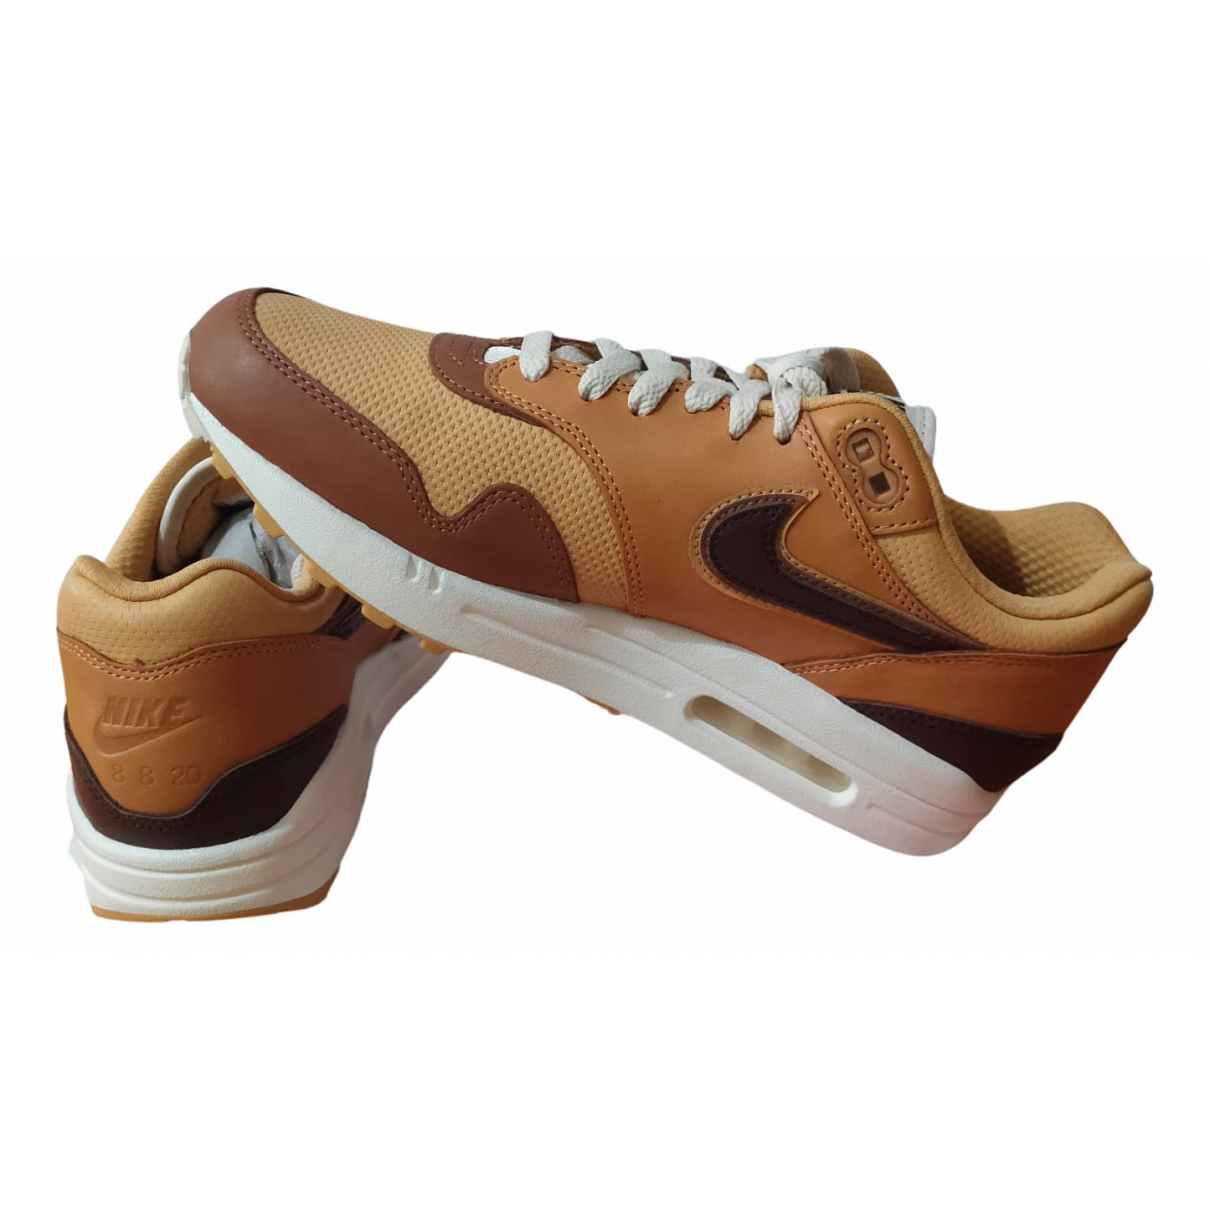 Nike Air Max 1 Brown Leather Trainers for Men 42 EU